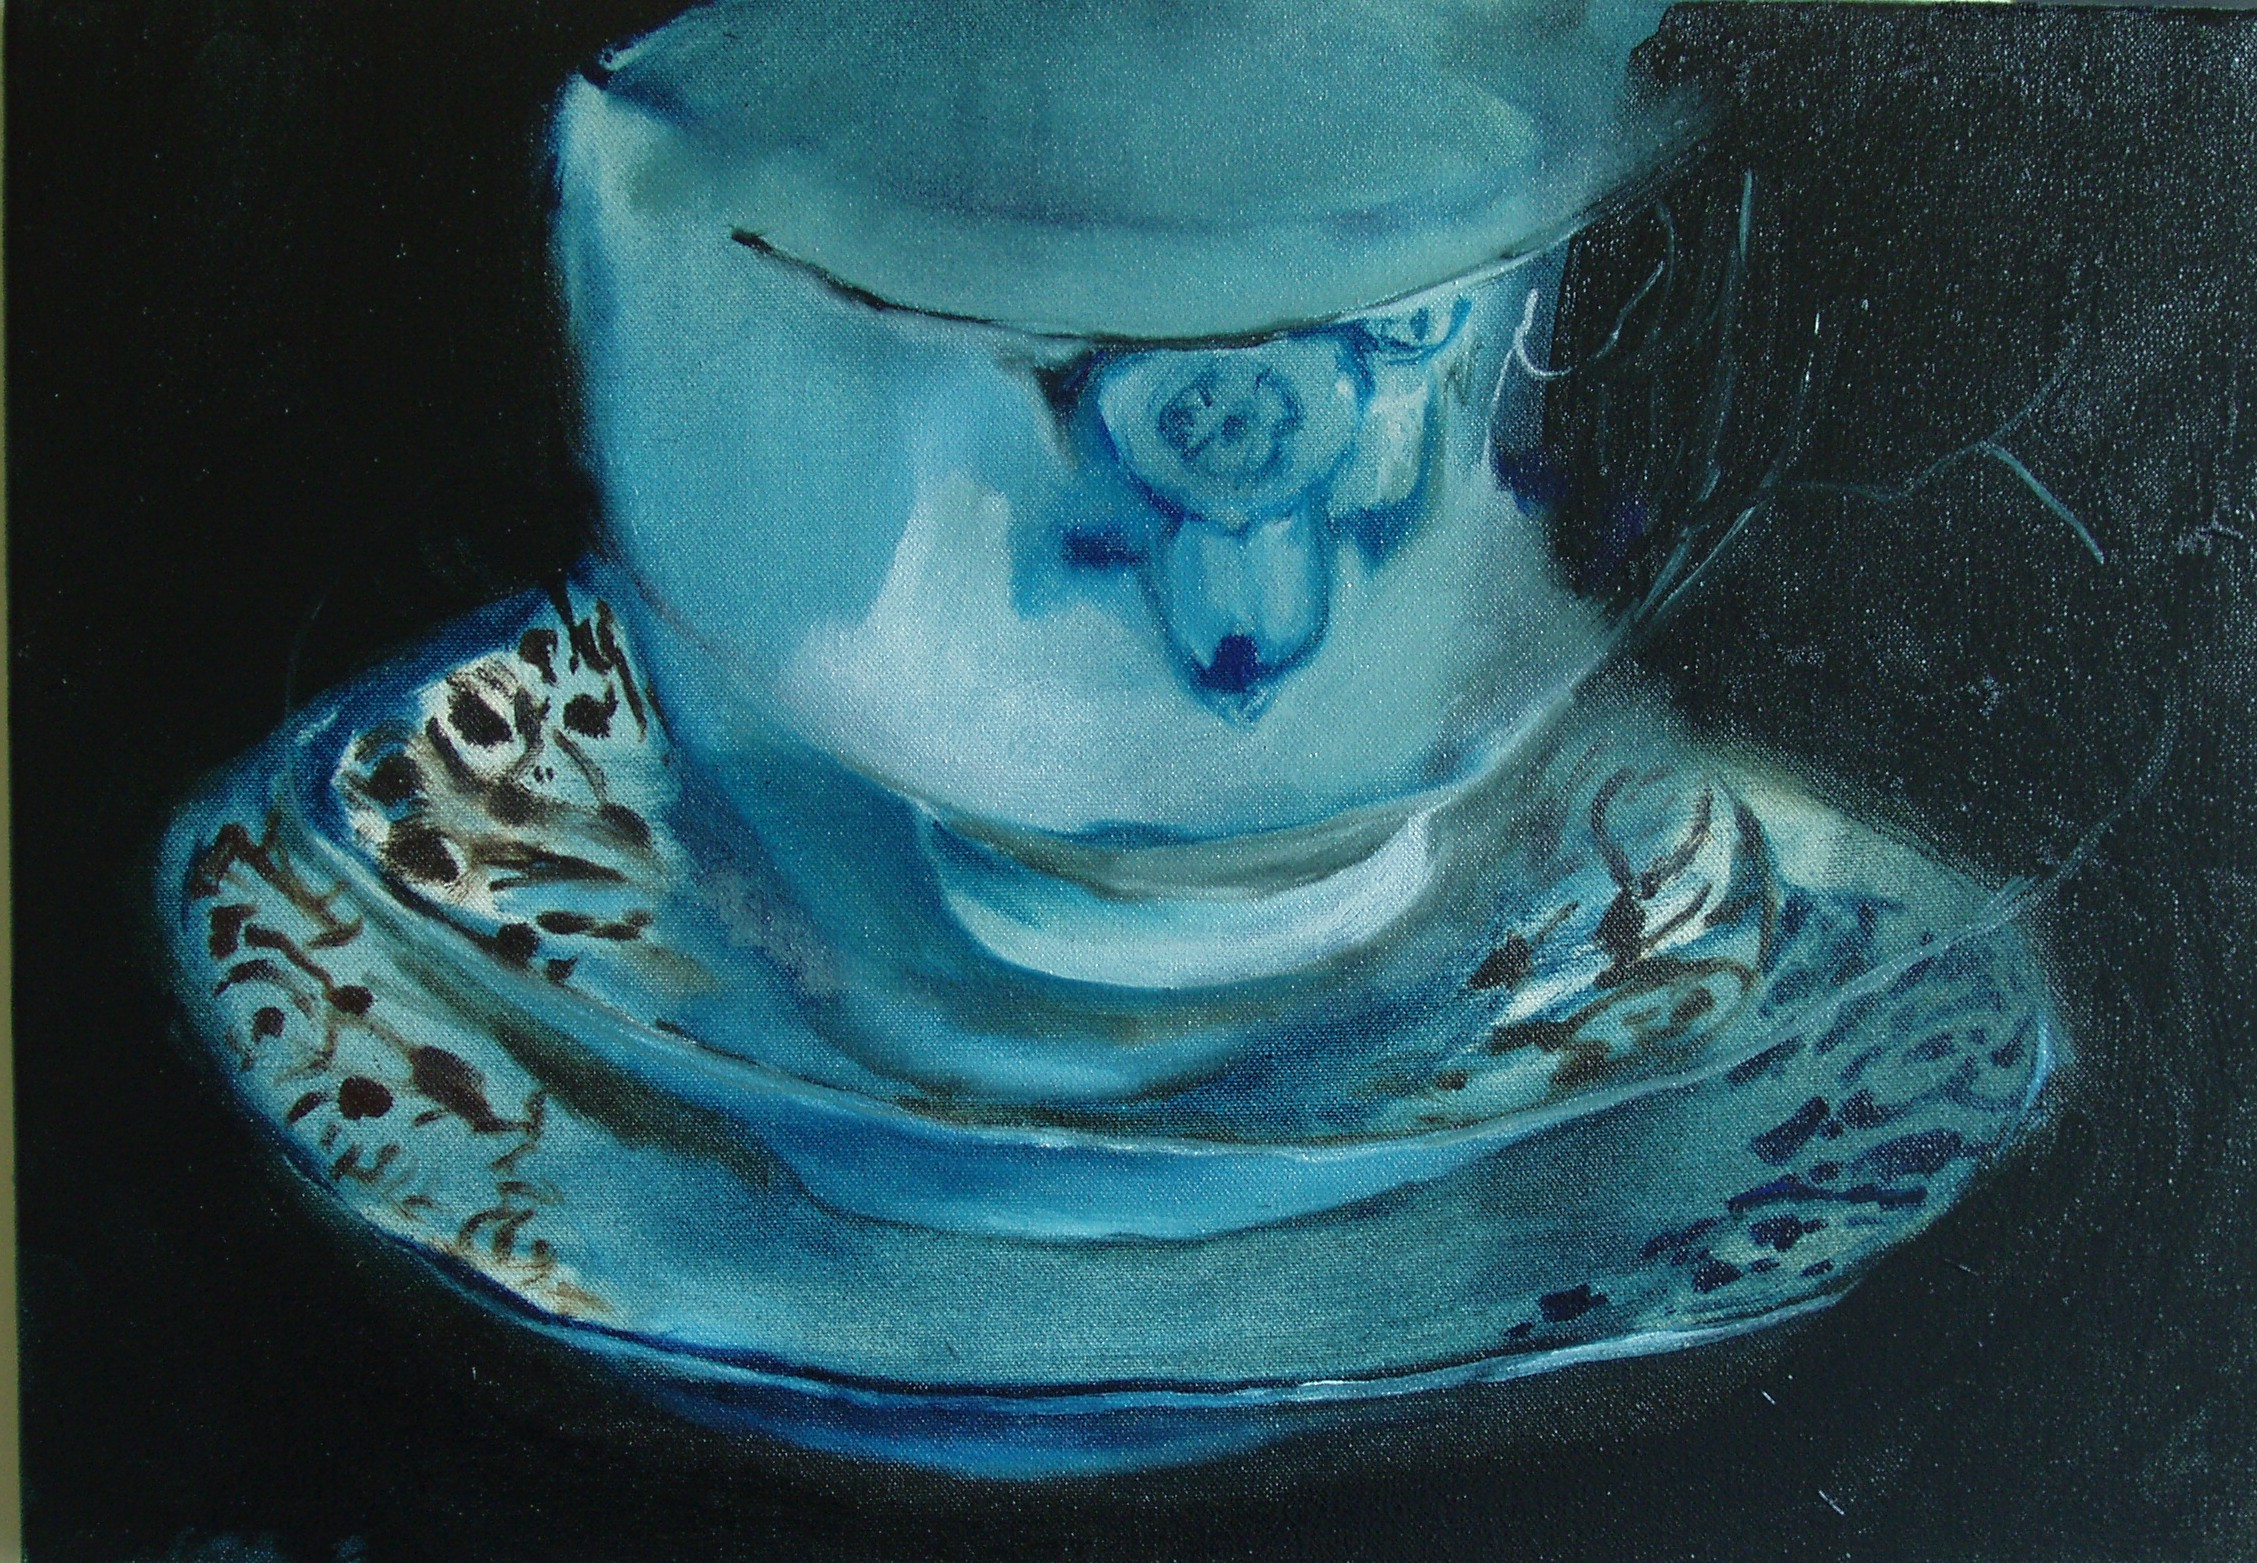 Teacup Study II , oil on canvas, 500x350mm, 2006, sold